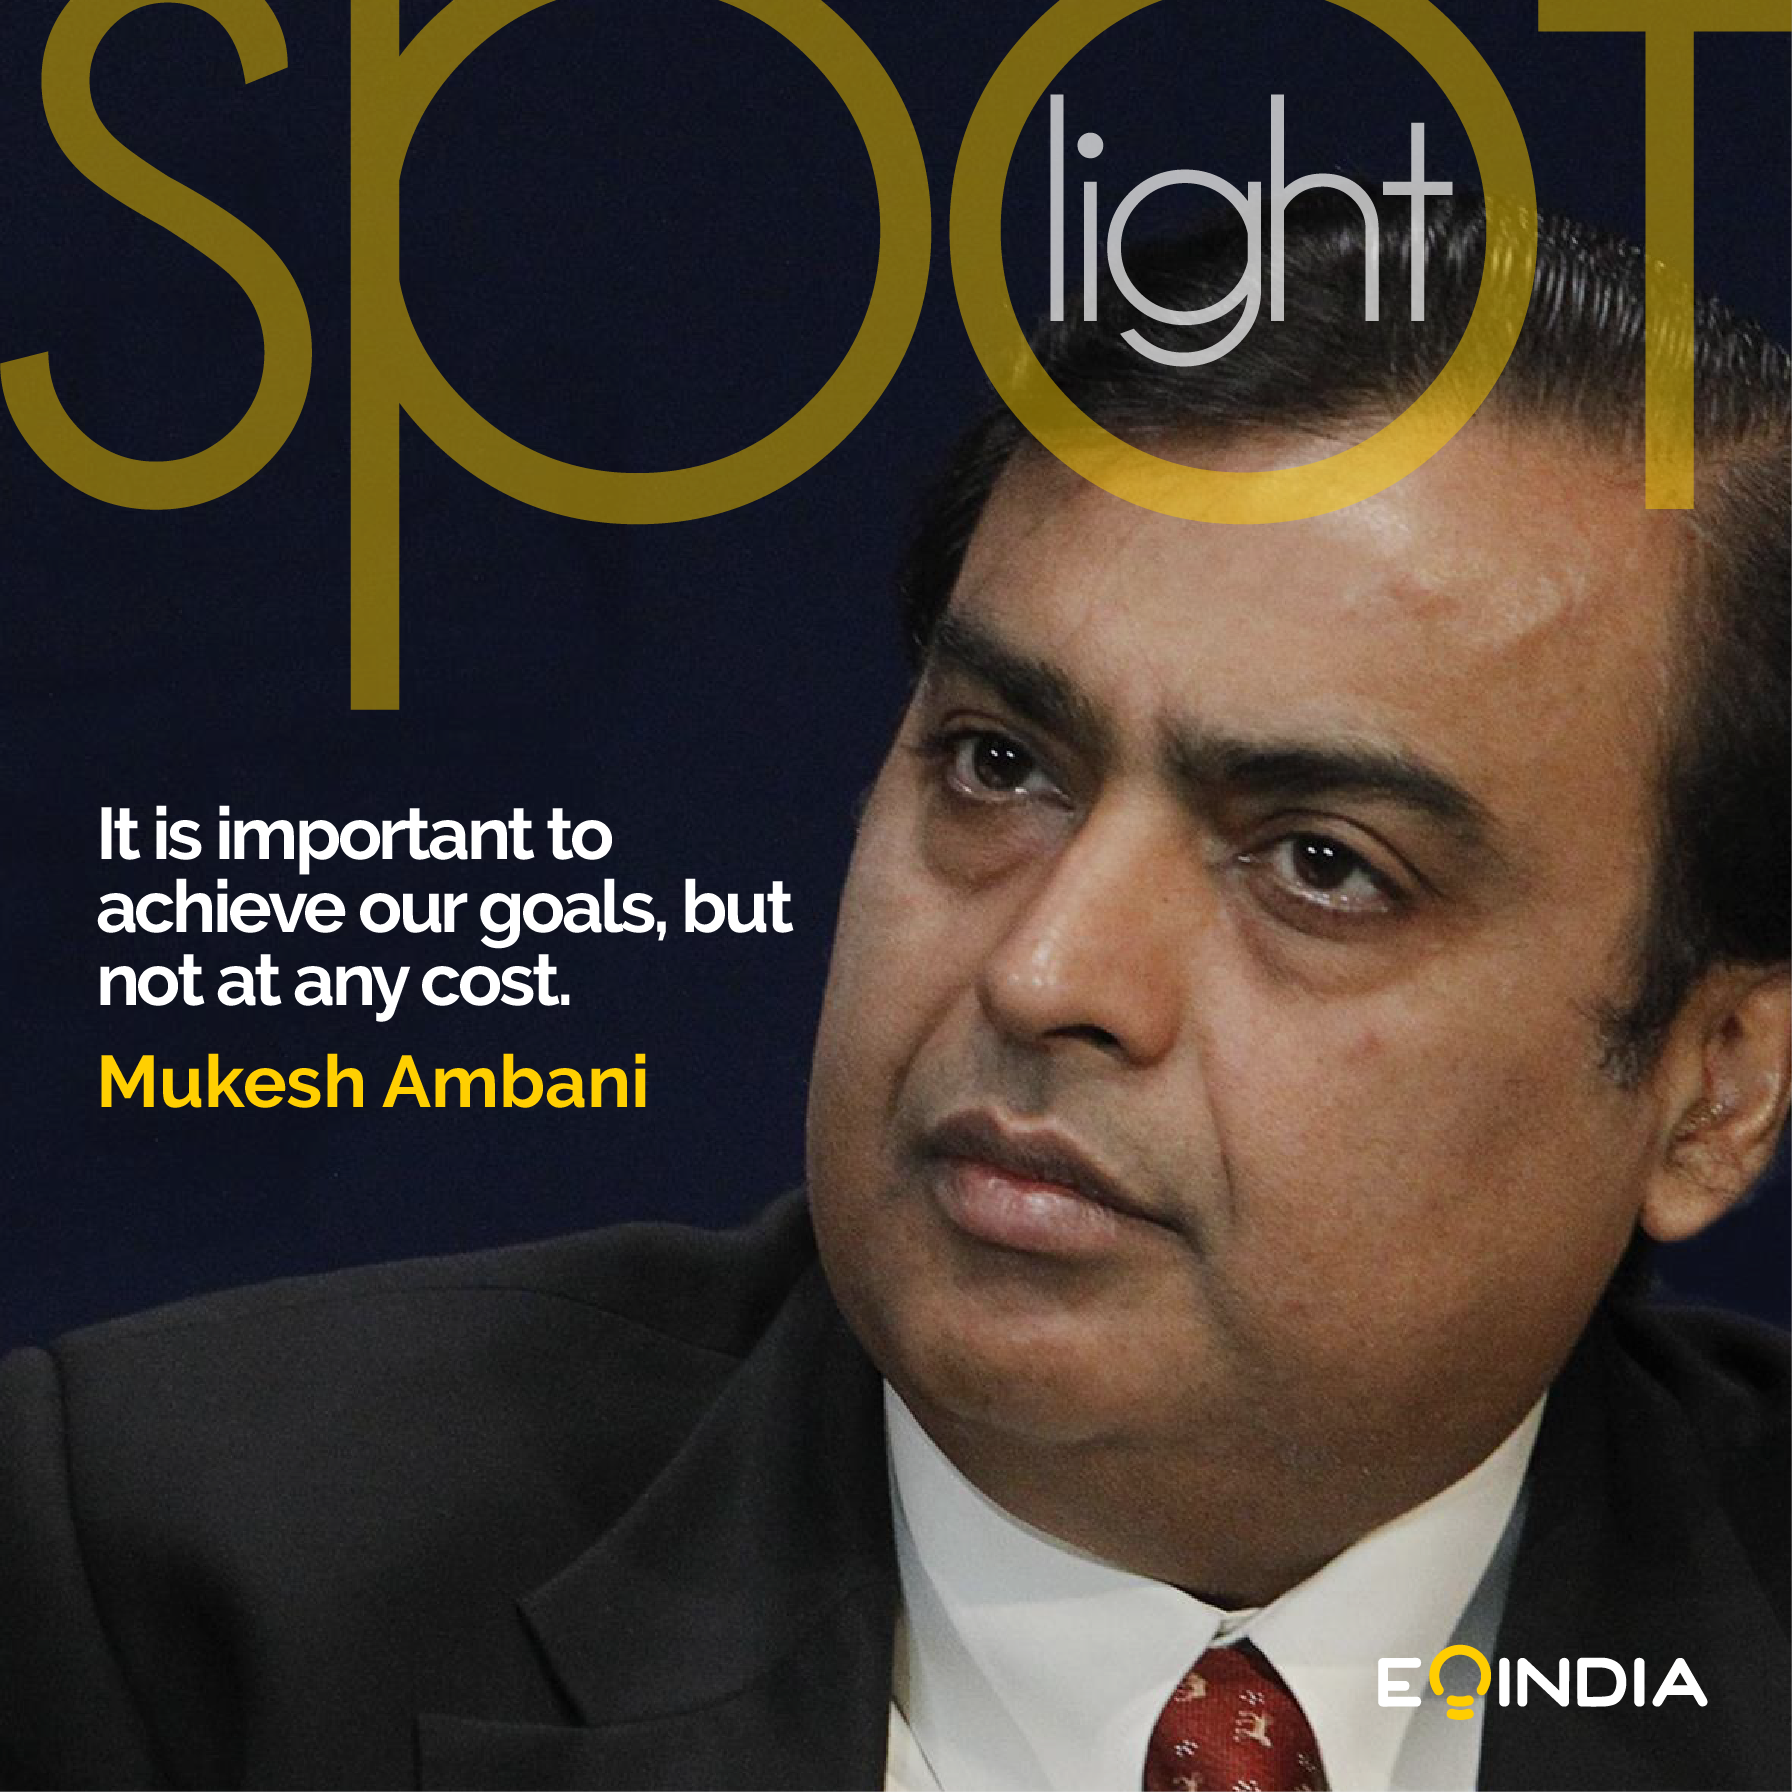 Top Entrepreneurs of India- Mukesh Ambani